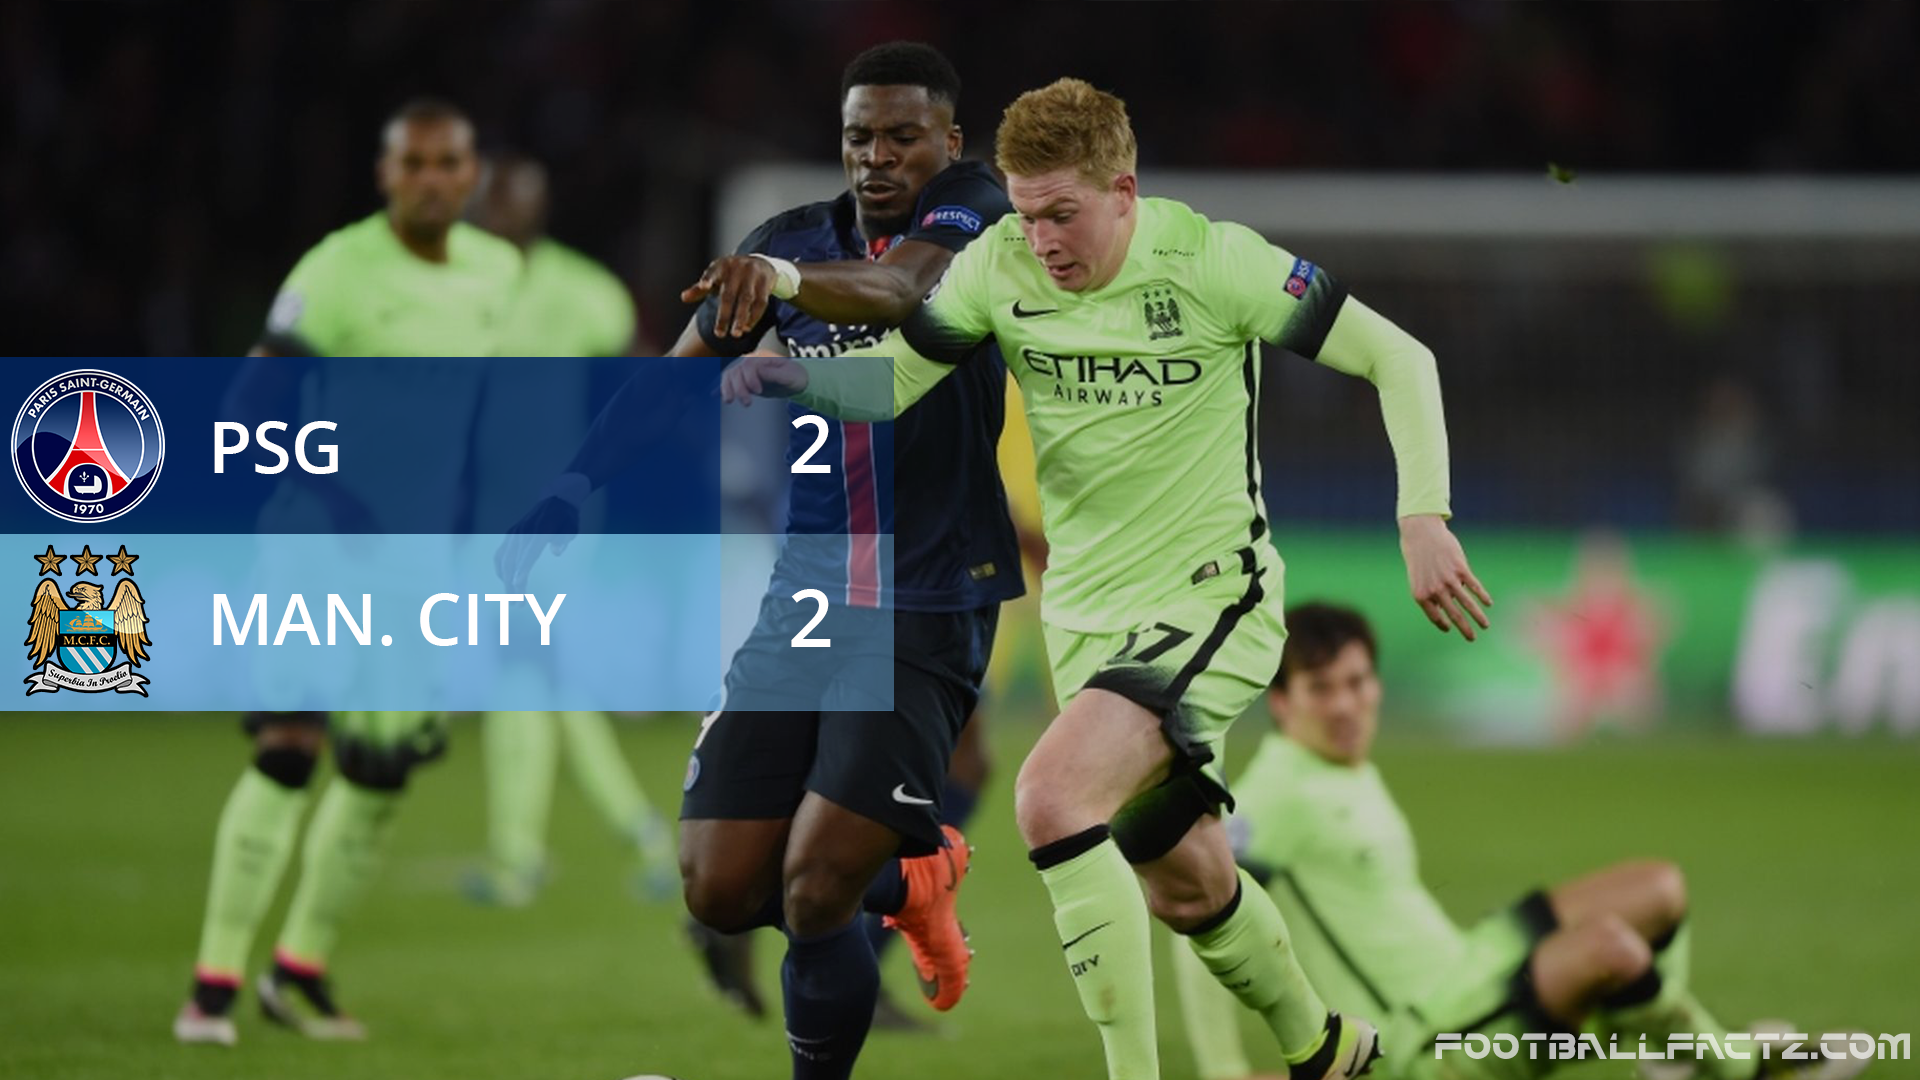 PSG 2 - 2 Manchester City, Champions League